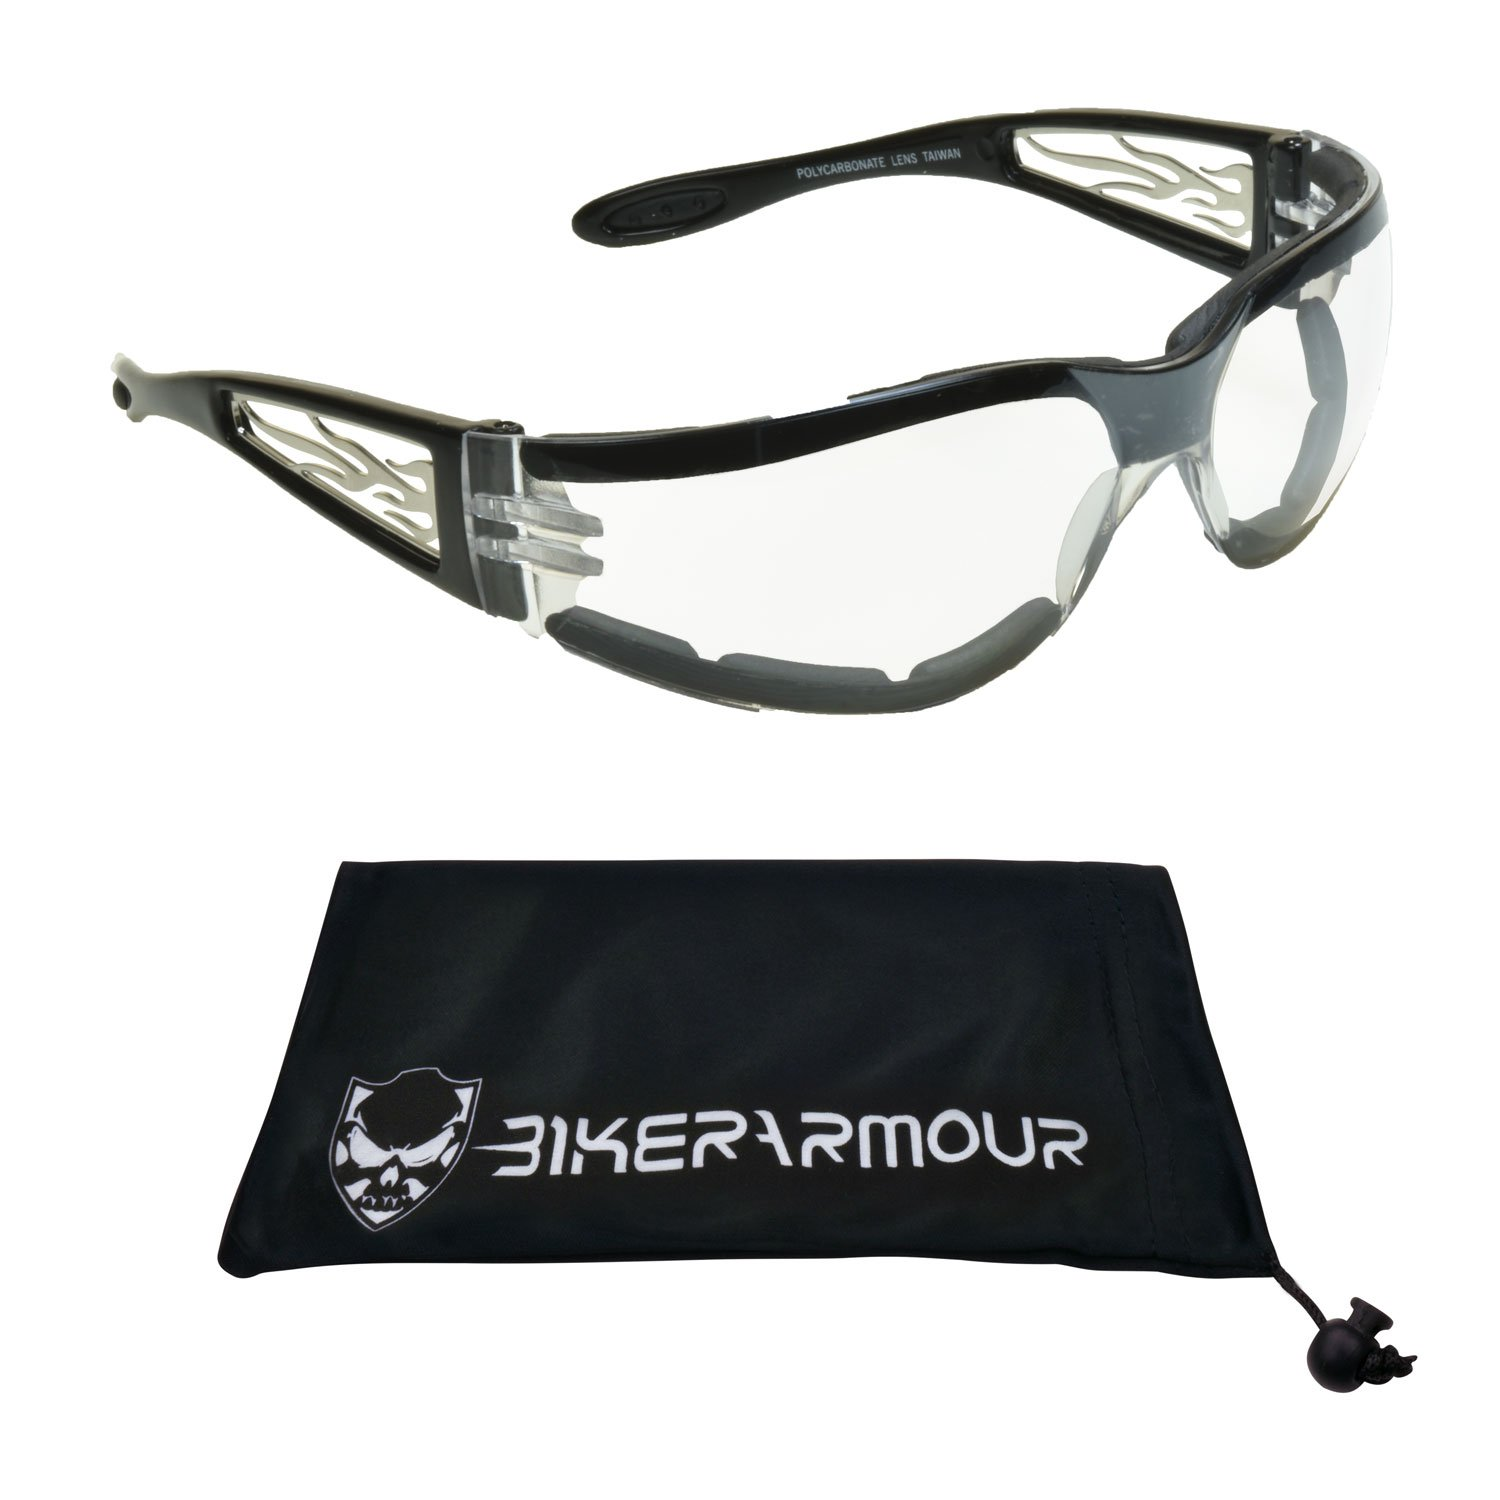 Clear Tinted Motorcycle Glasses Foam Padded for Men and Women. Clear Safety Polycarbonate Lenses and Vented EVA Foam Cushion